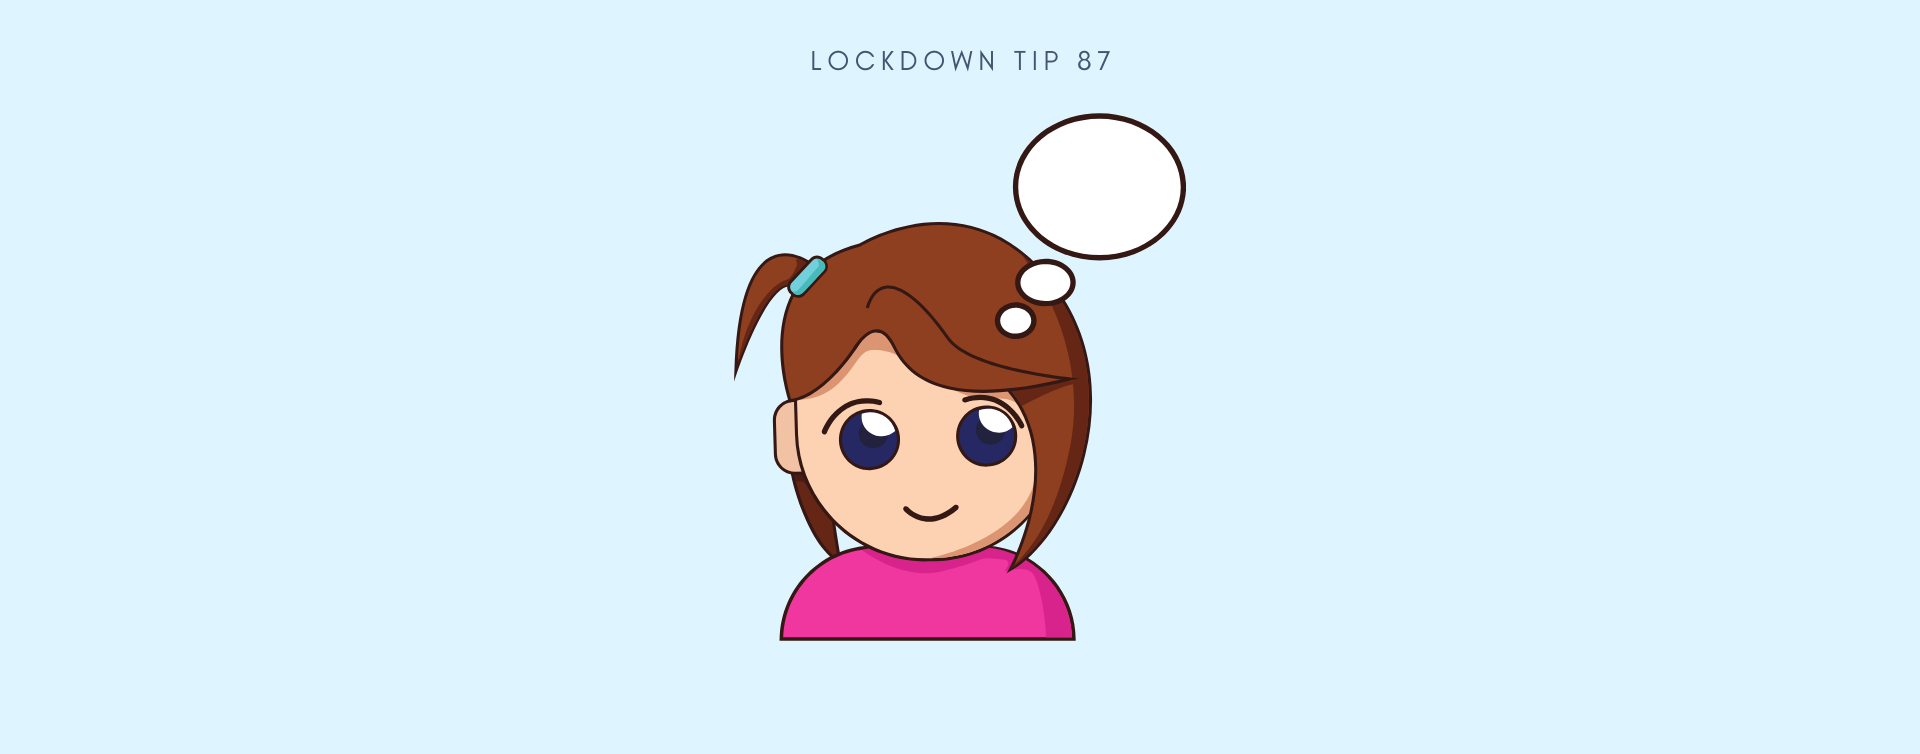 MCSA Lockdown Tip 87